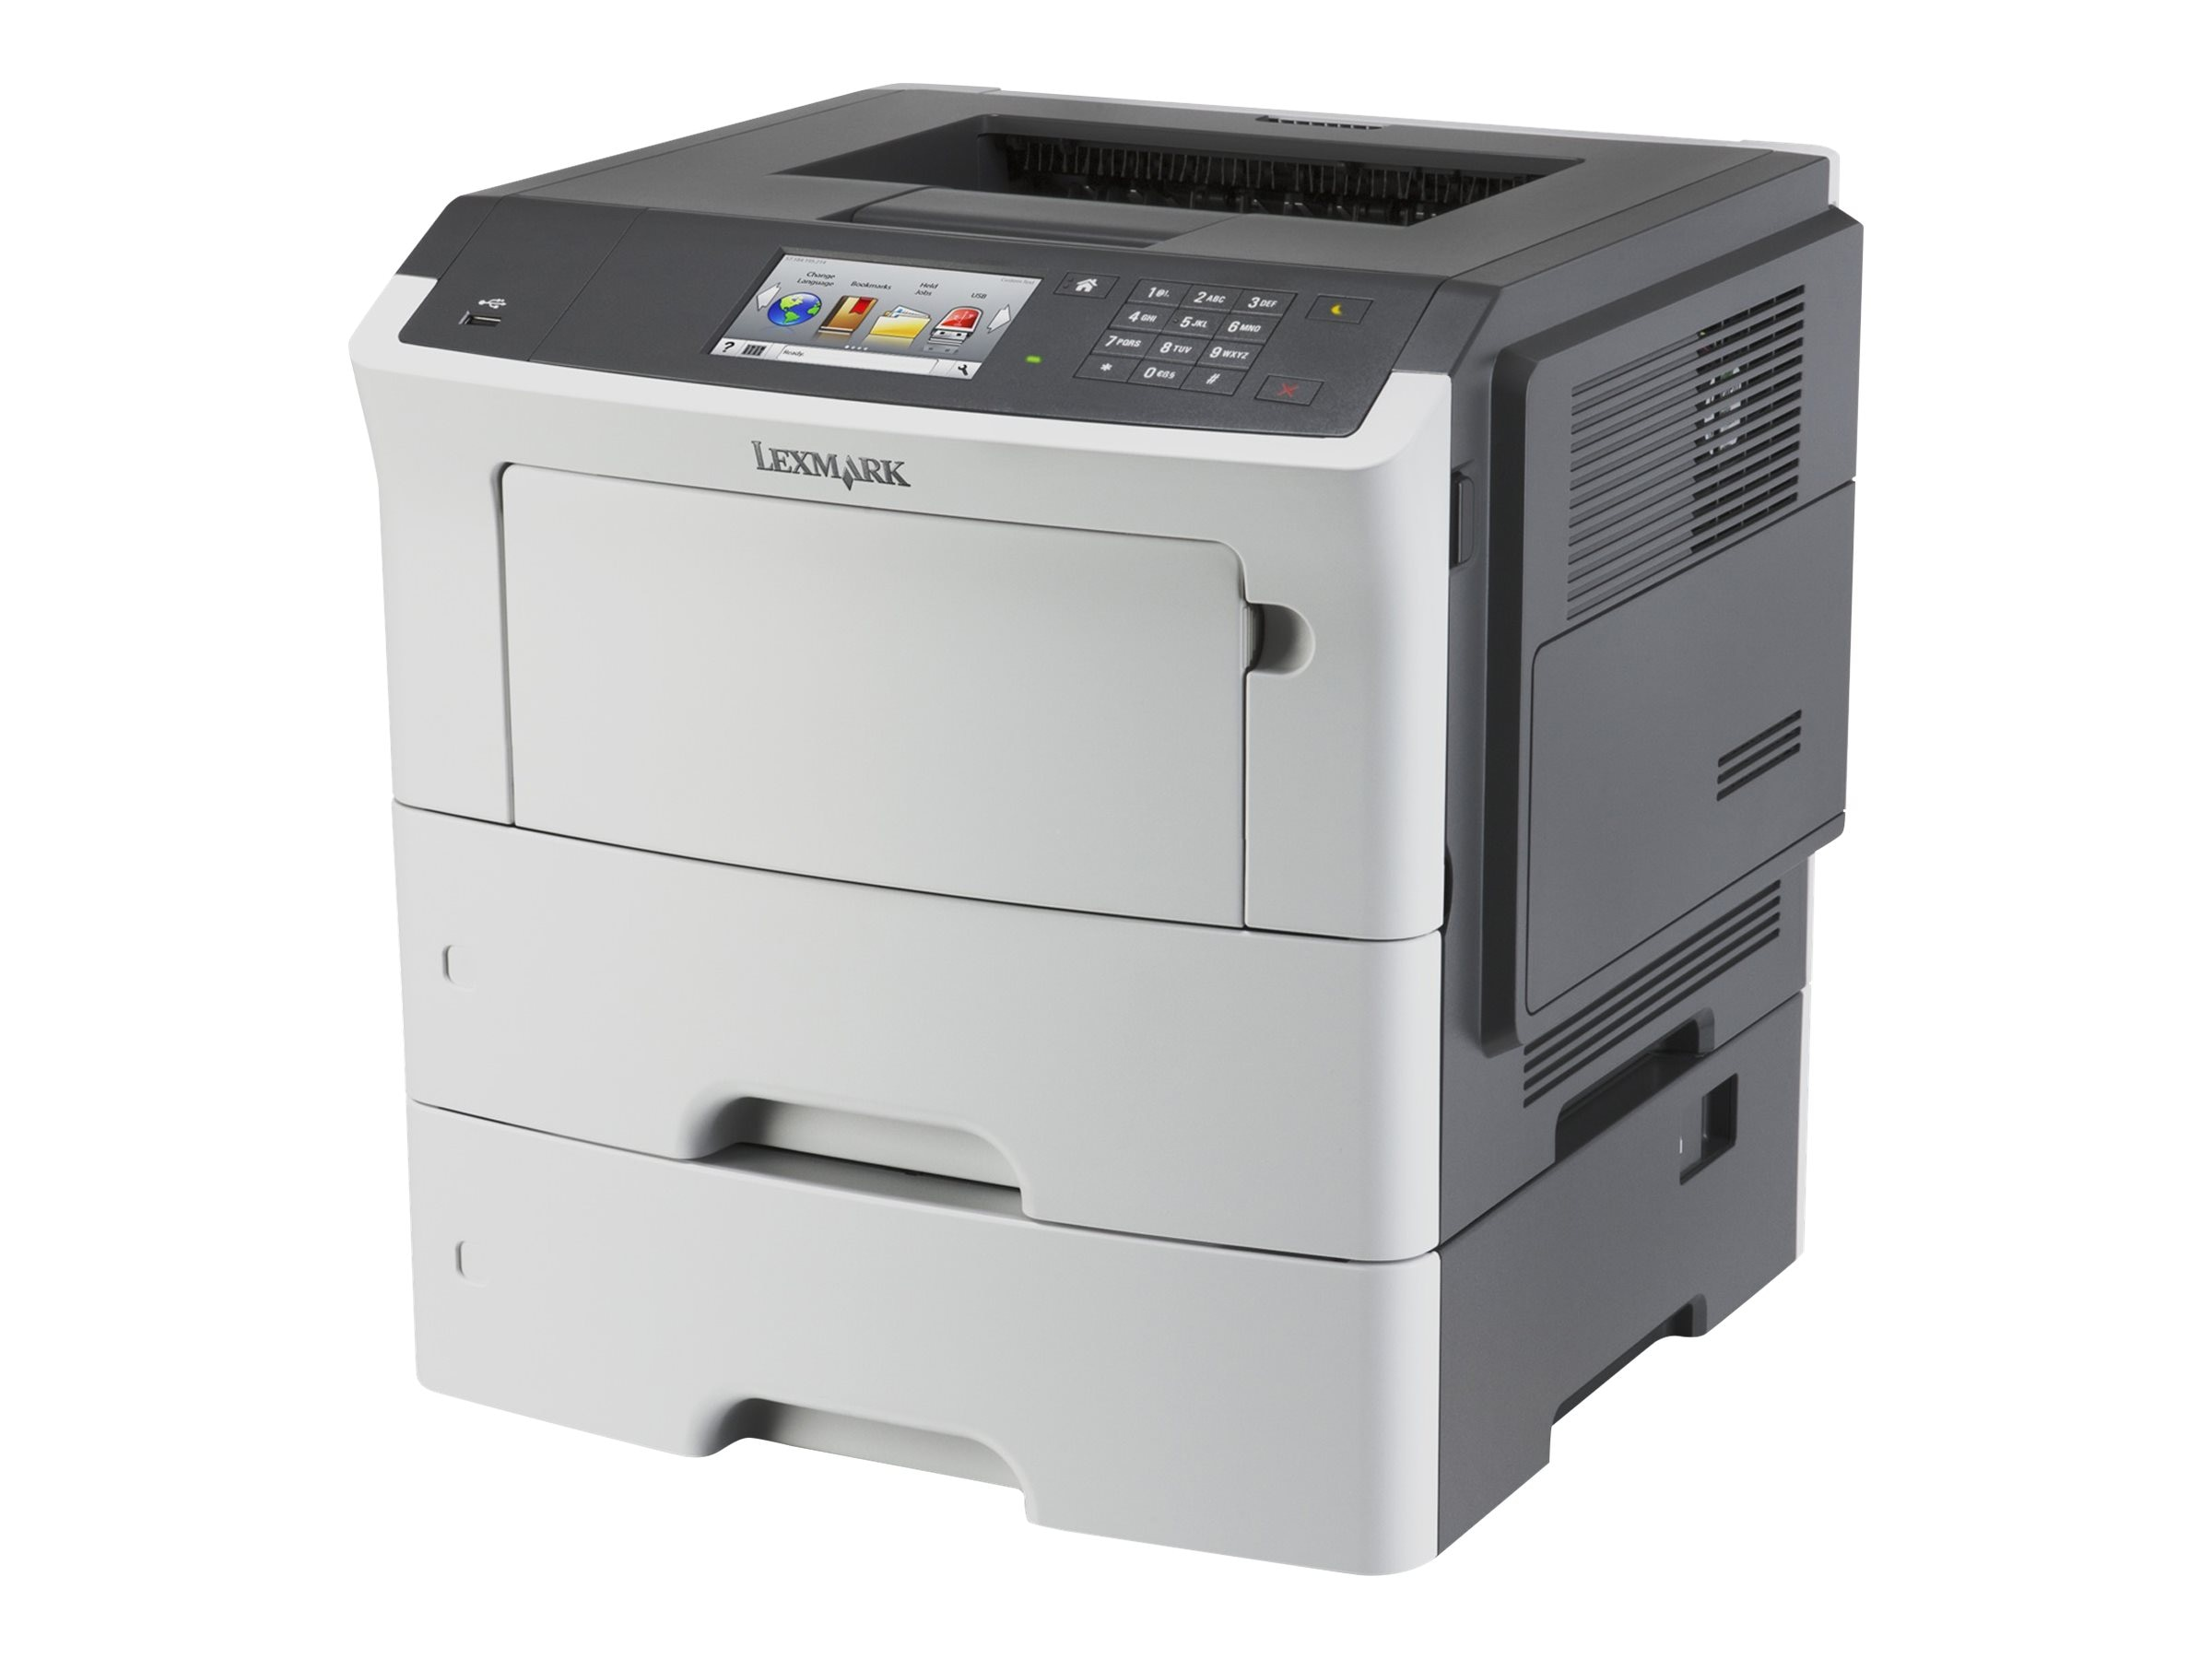 Lexmark MS610dte Monochrome Laser Printer (TAA Compliant)